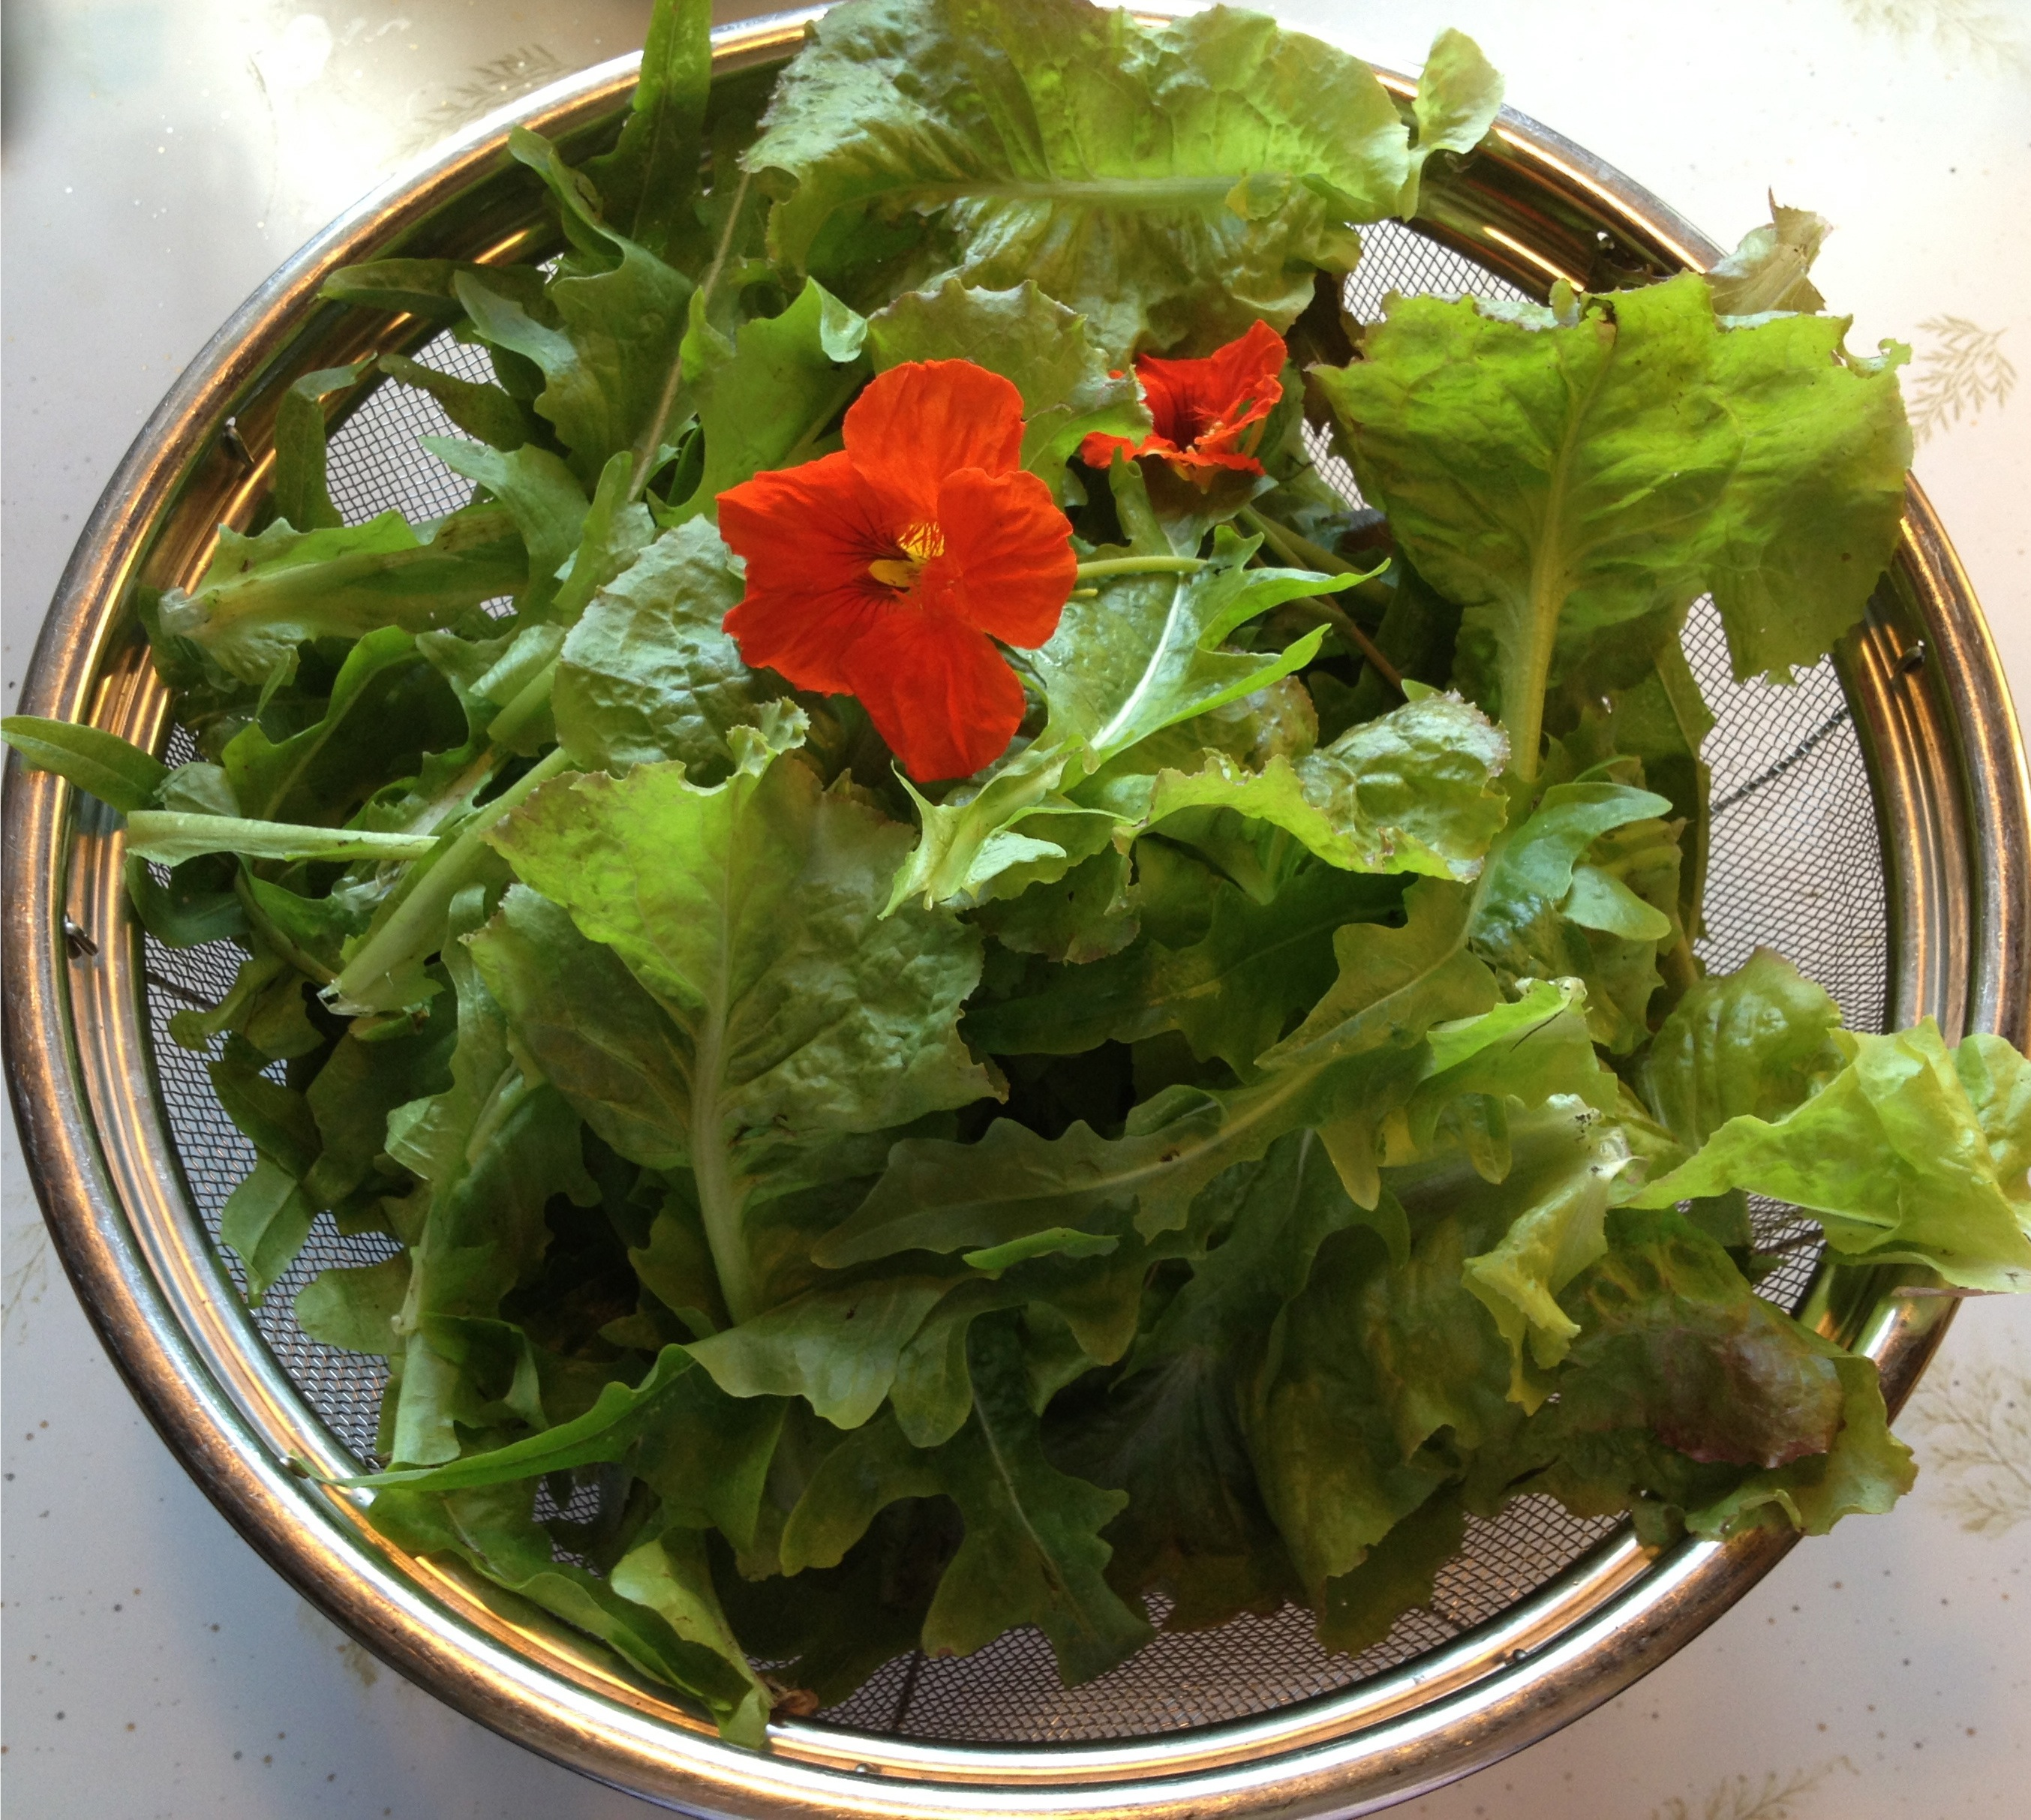 Just cut garden lettuce with nasturtiums in a colander.